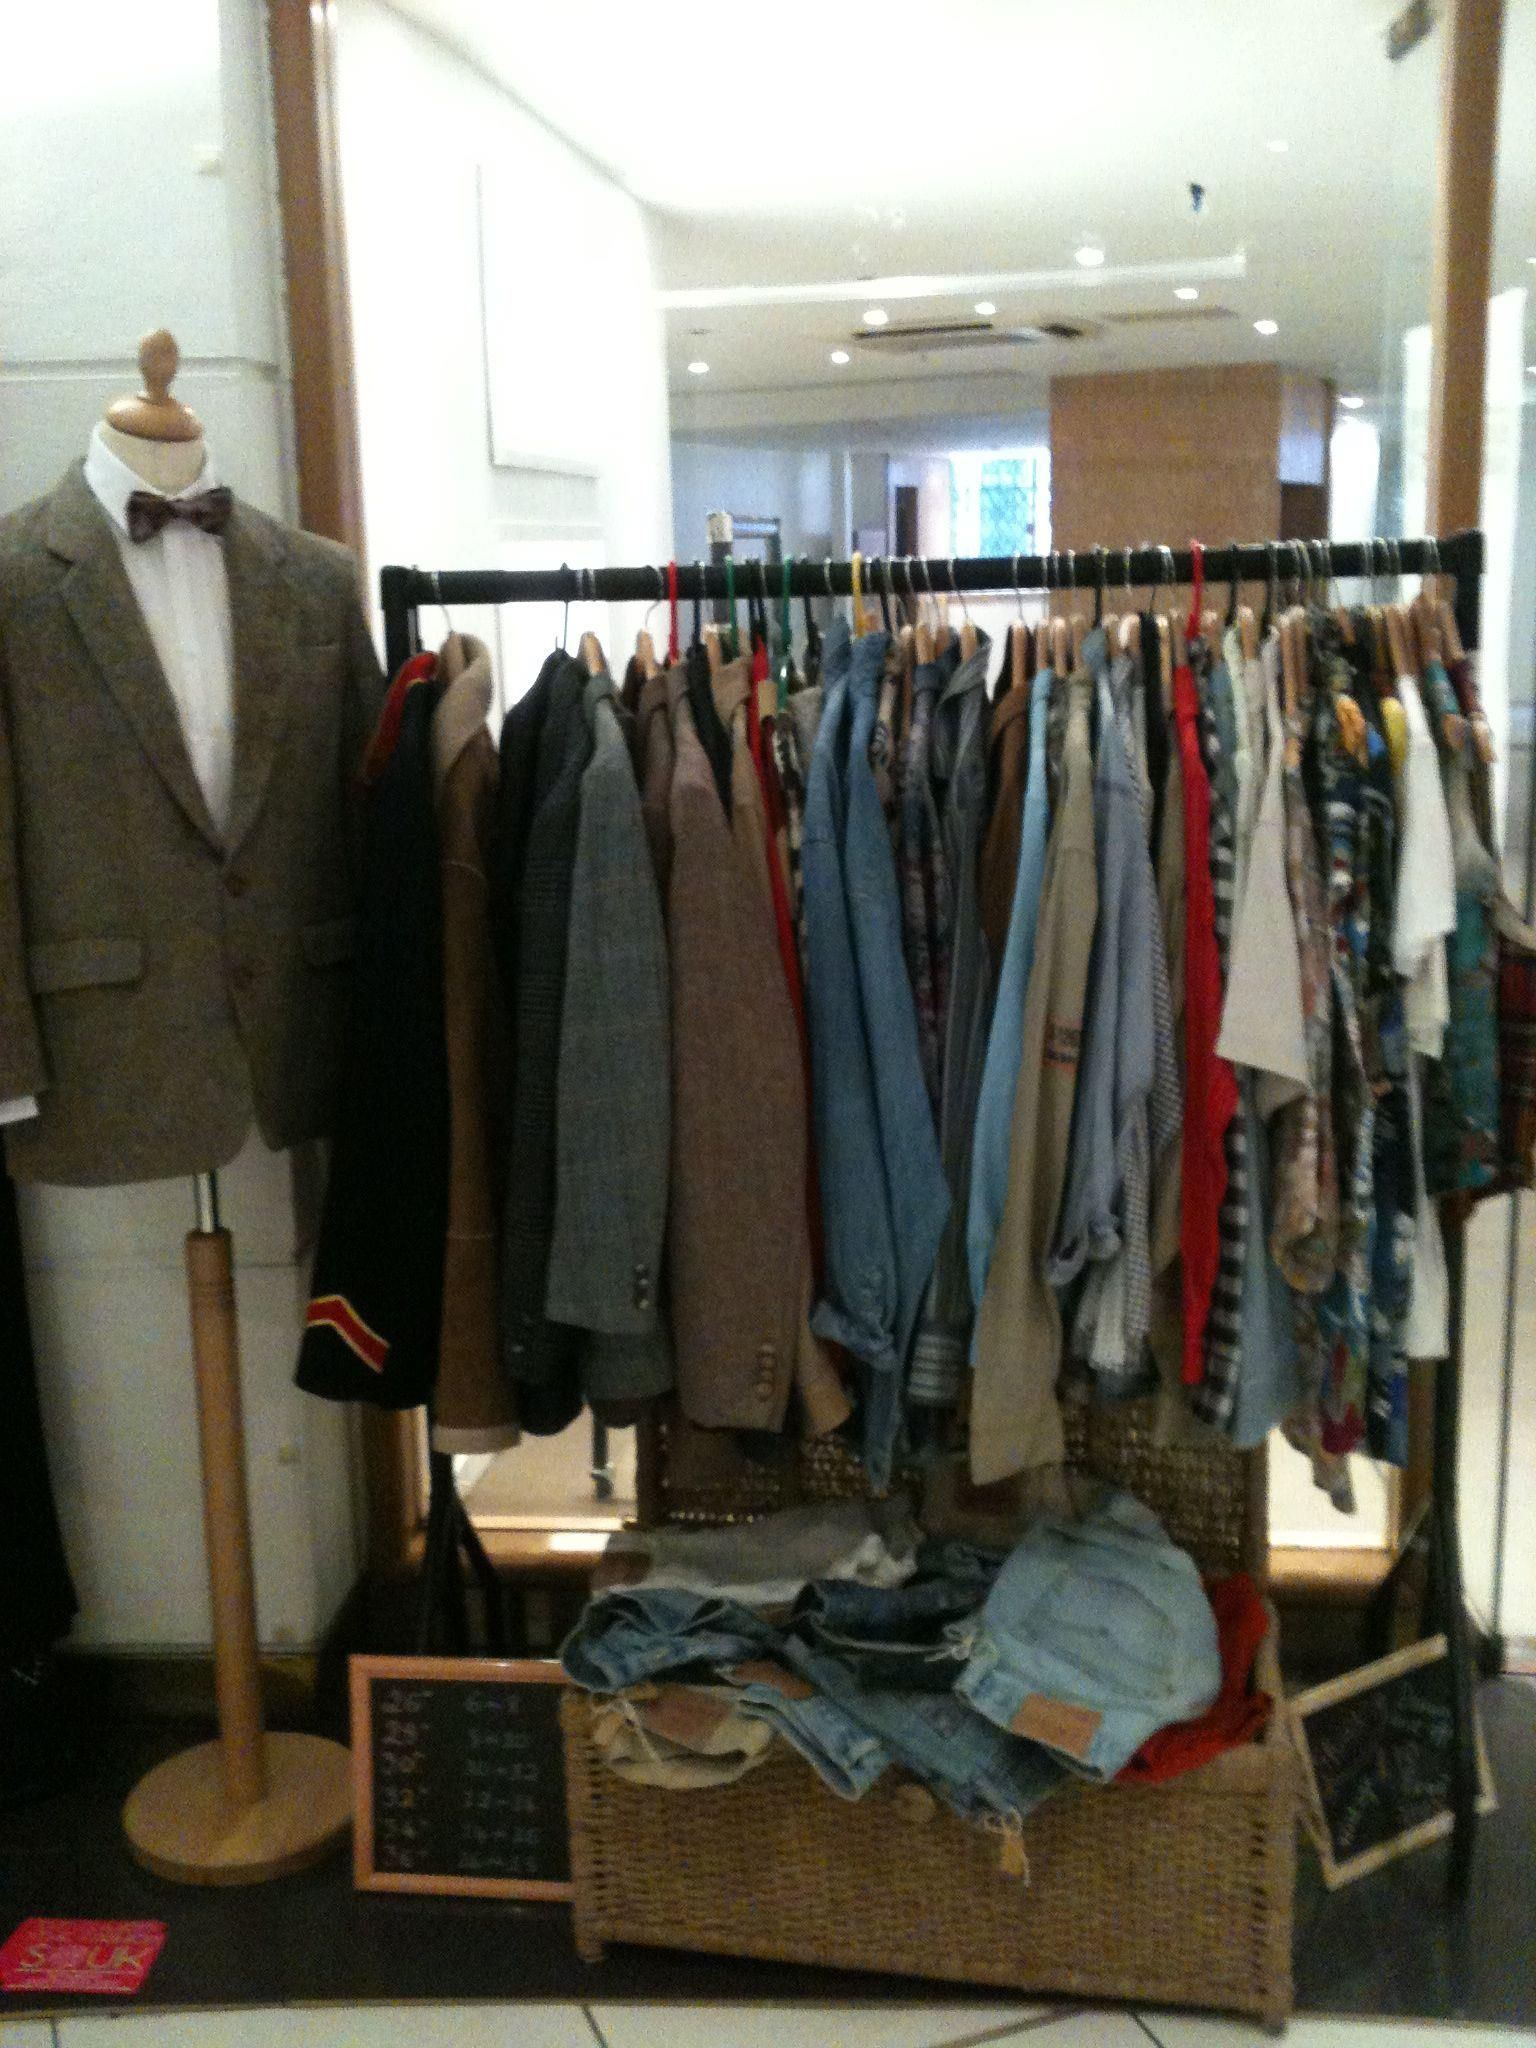 Vintage Clothing Market Stall Menswear Vintage Outfits Menswear Thrifted Outfits